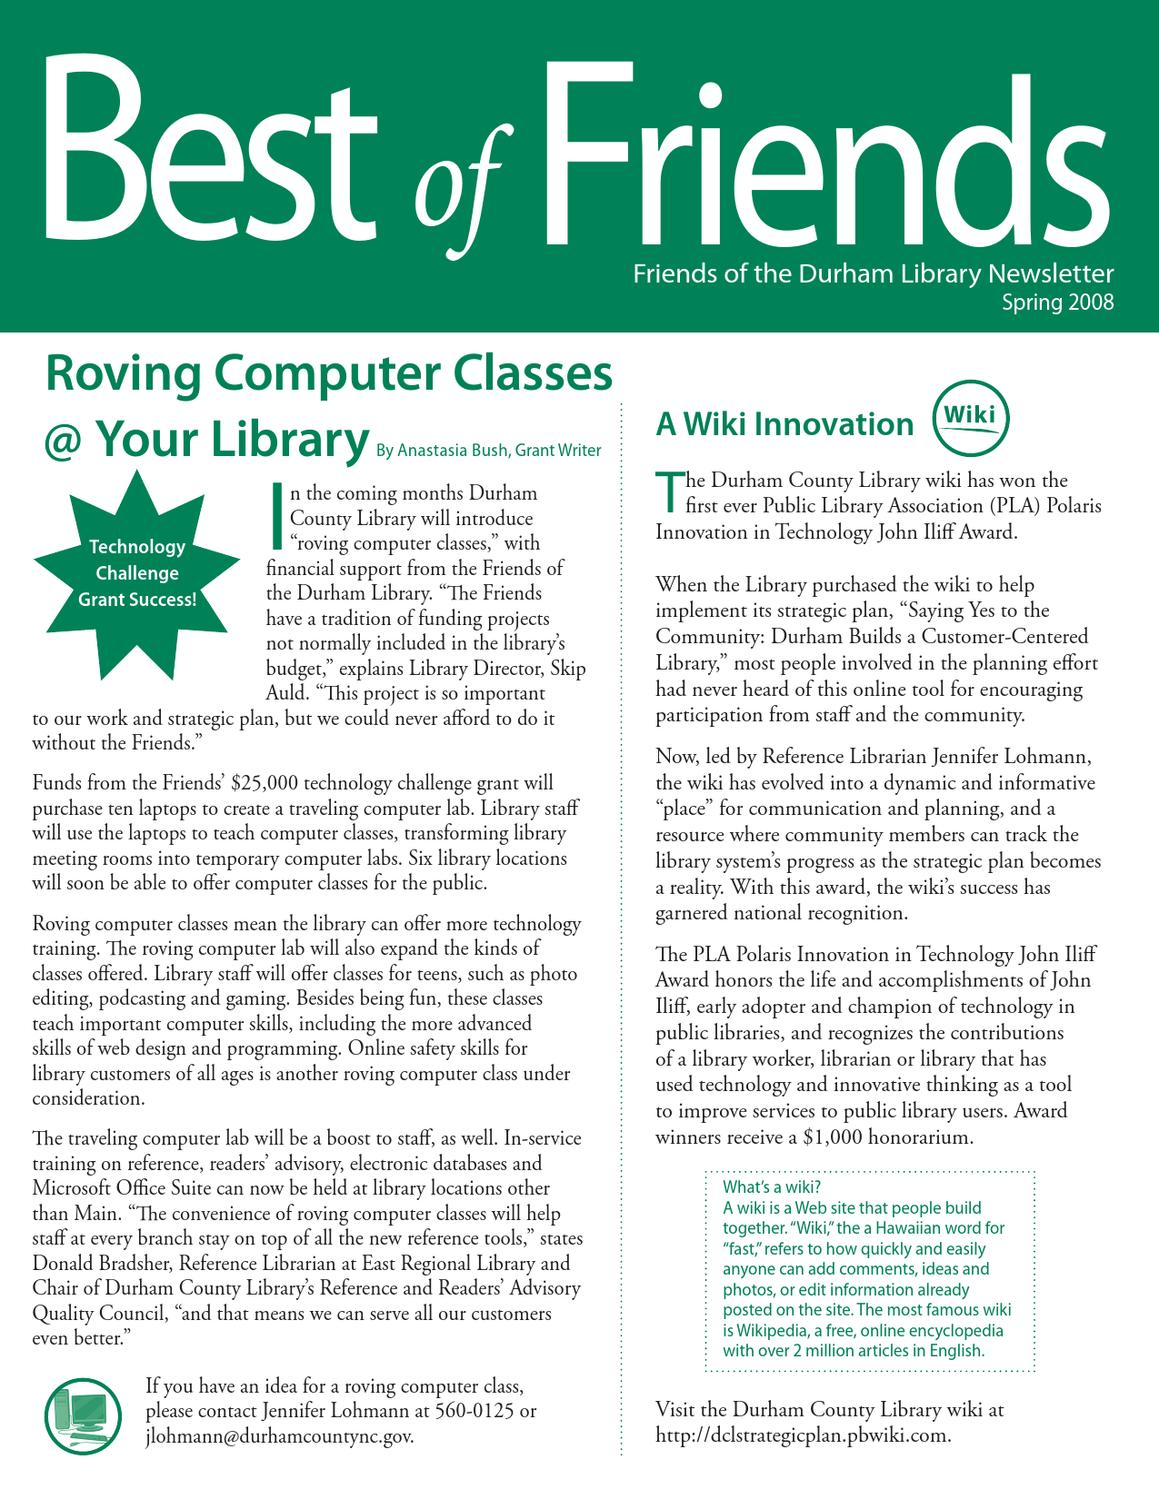 Amber Perkins Wiki best of friends - spring 2008durham county library - issuu